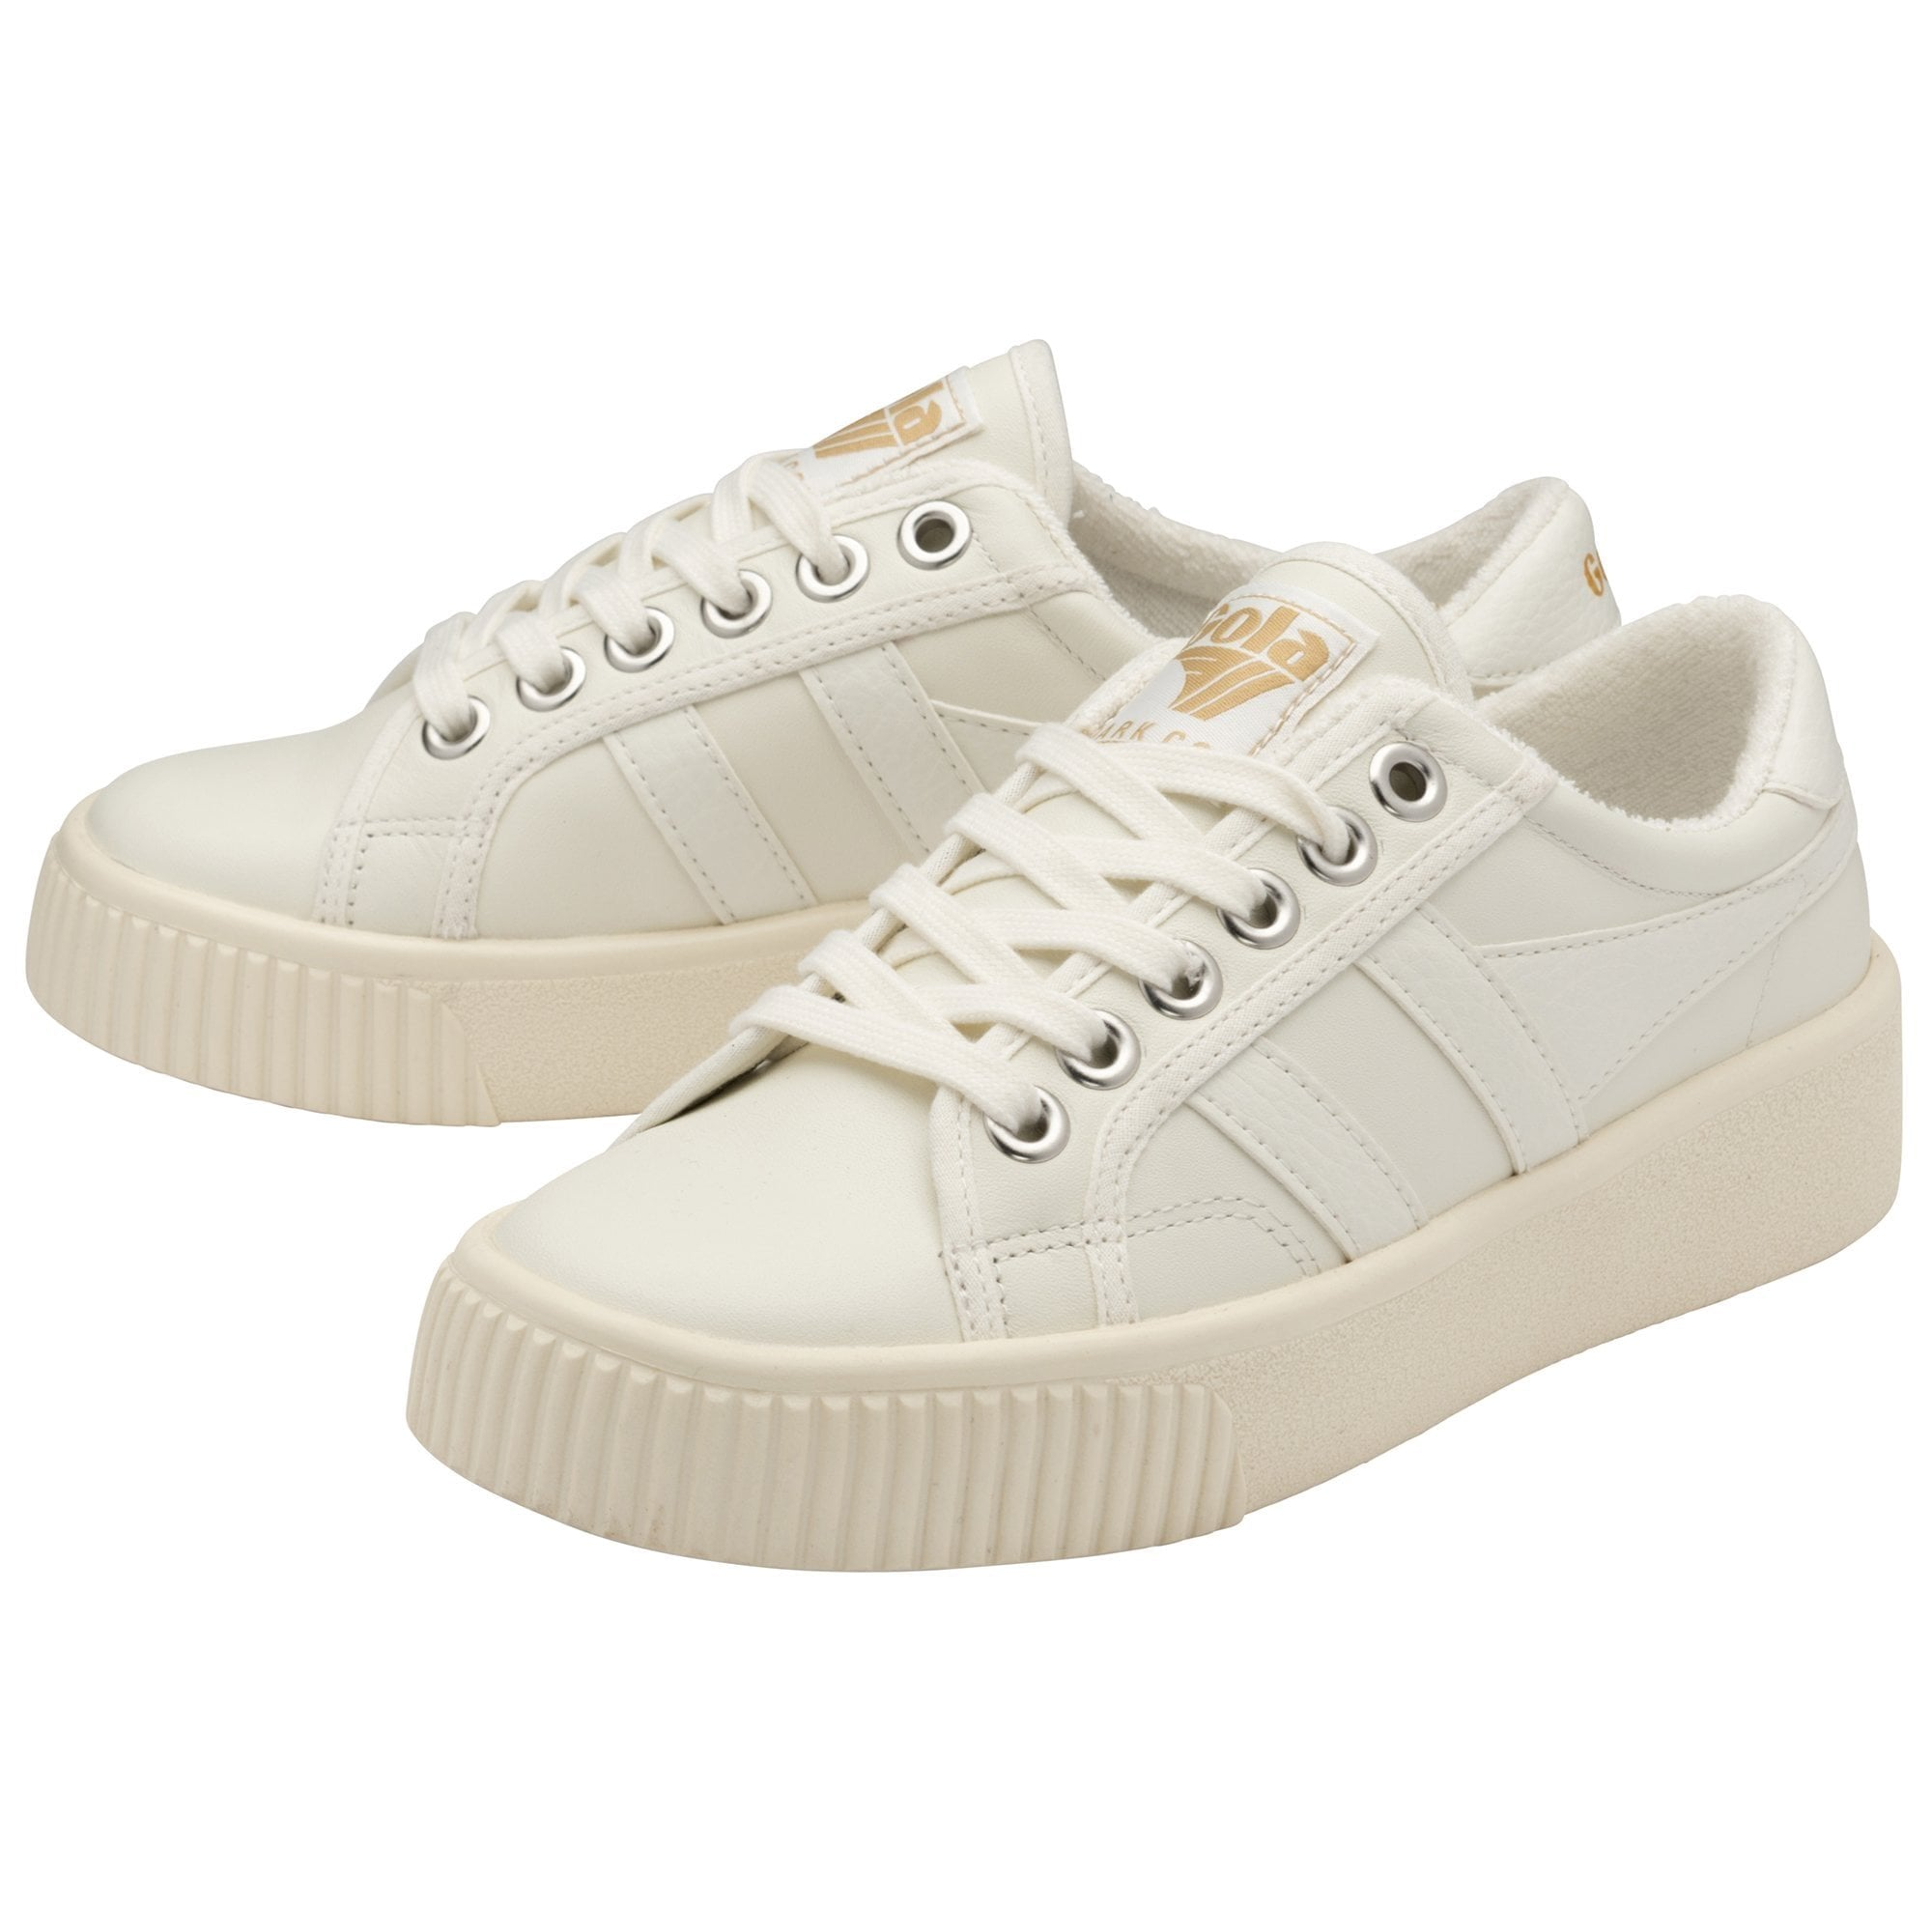 Buy Gola Baseline Mark Cox Leather sneakers in white/white online